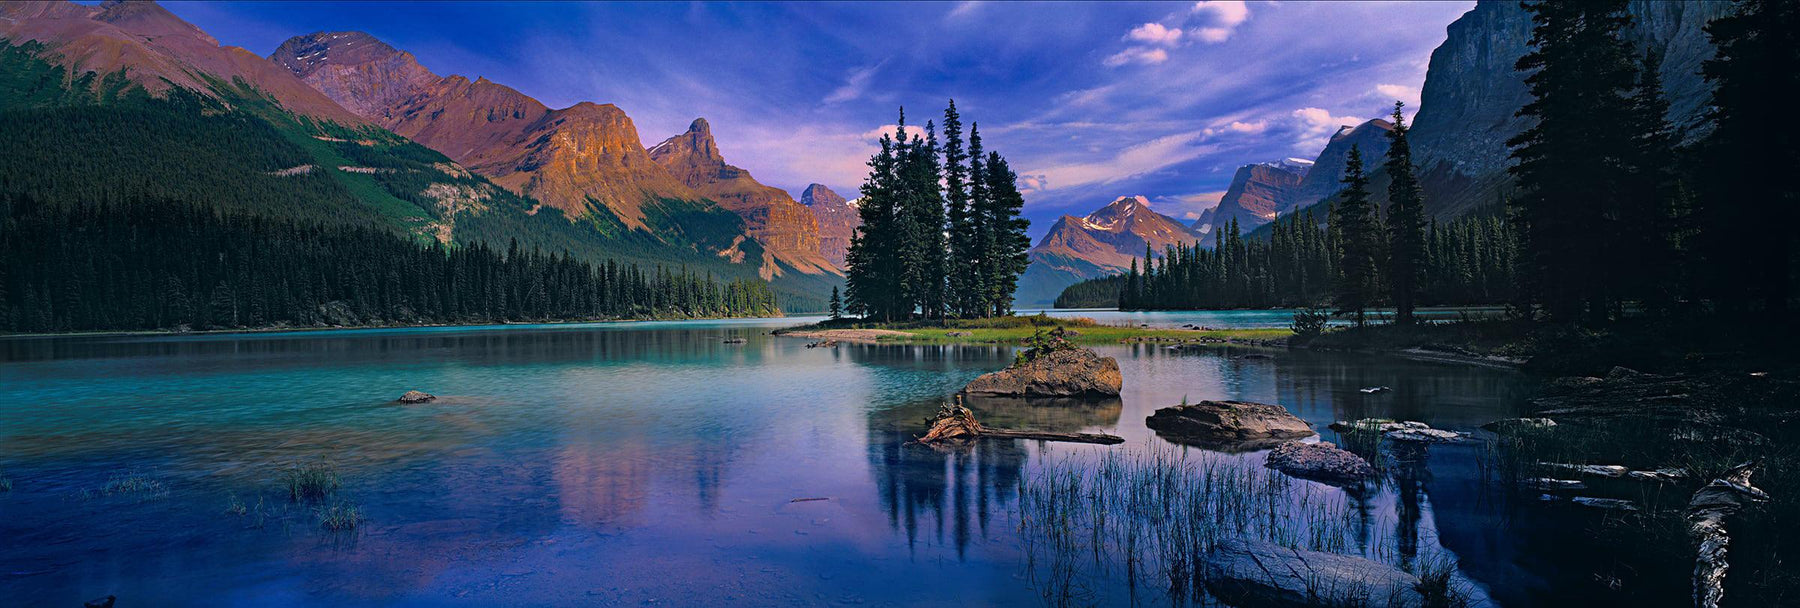 Group of Pine trees on a small island in Maligne Lake Canada surrounded by forests and mountains